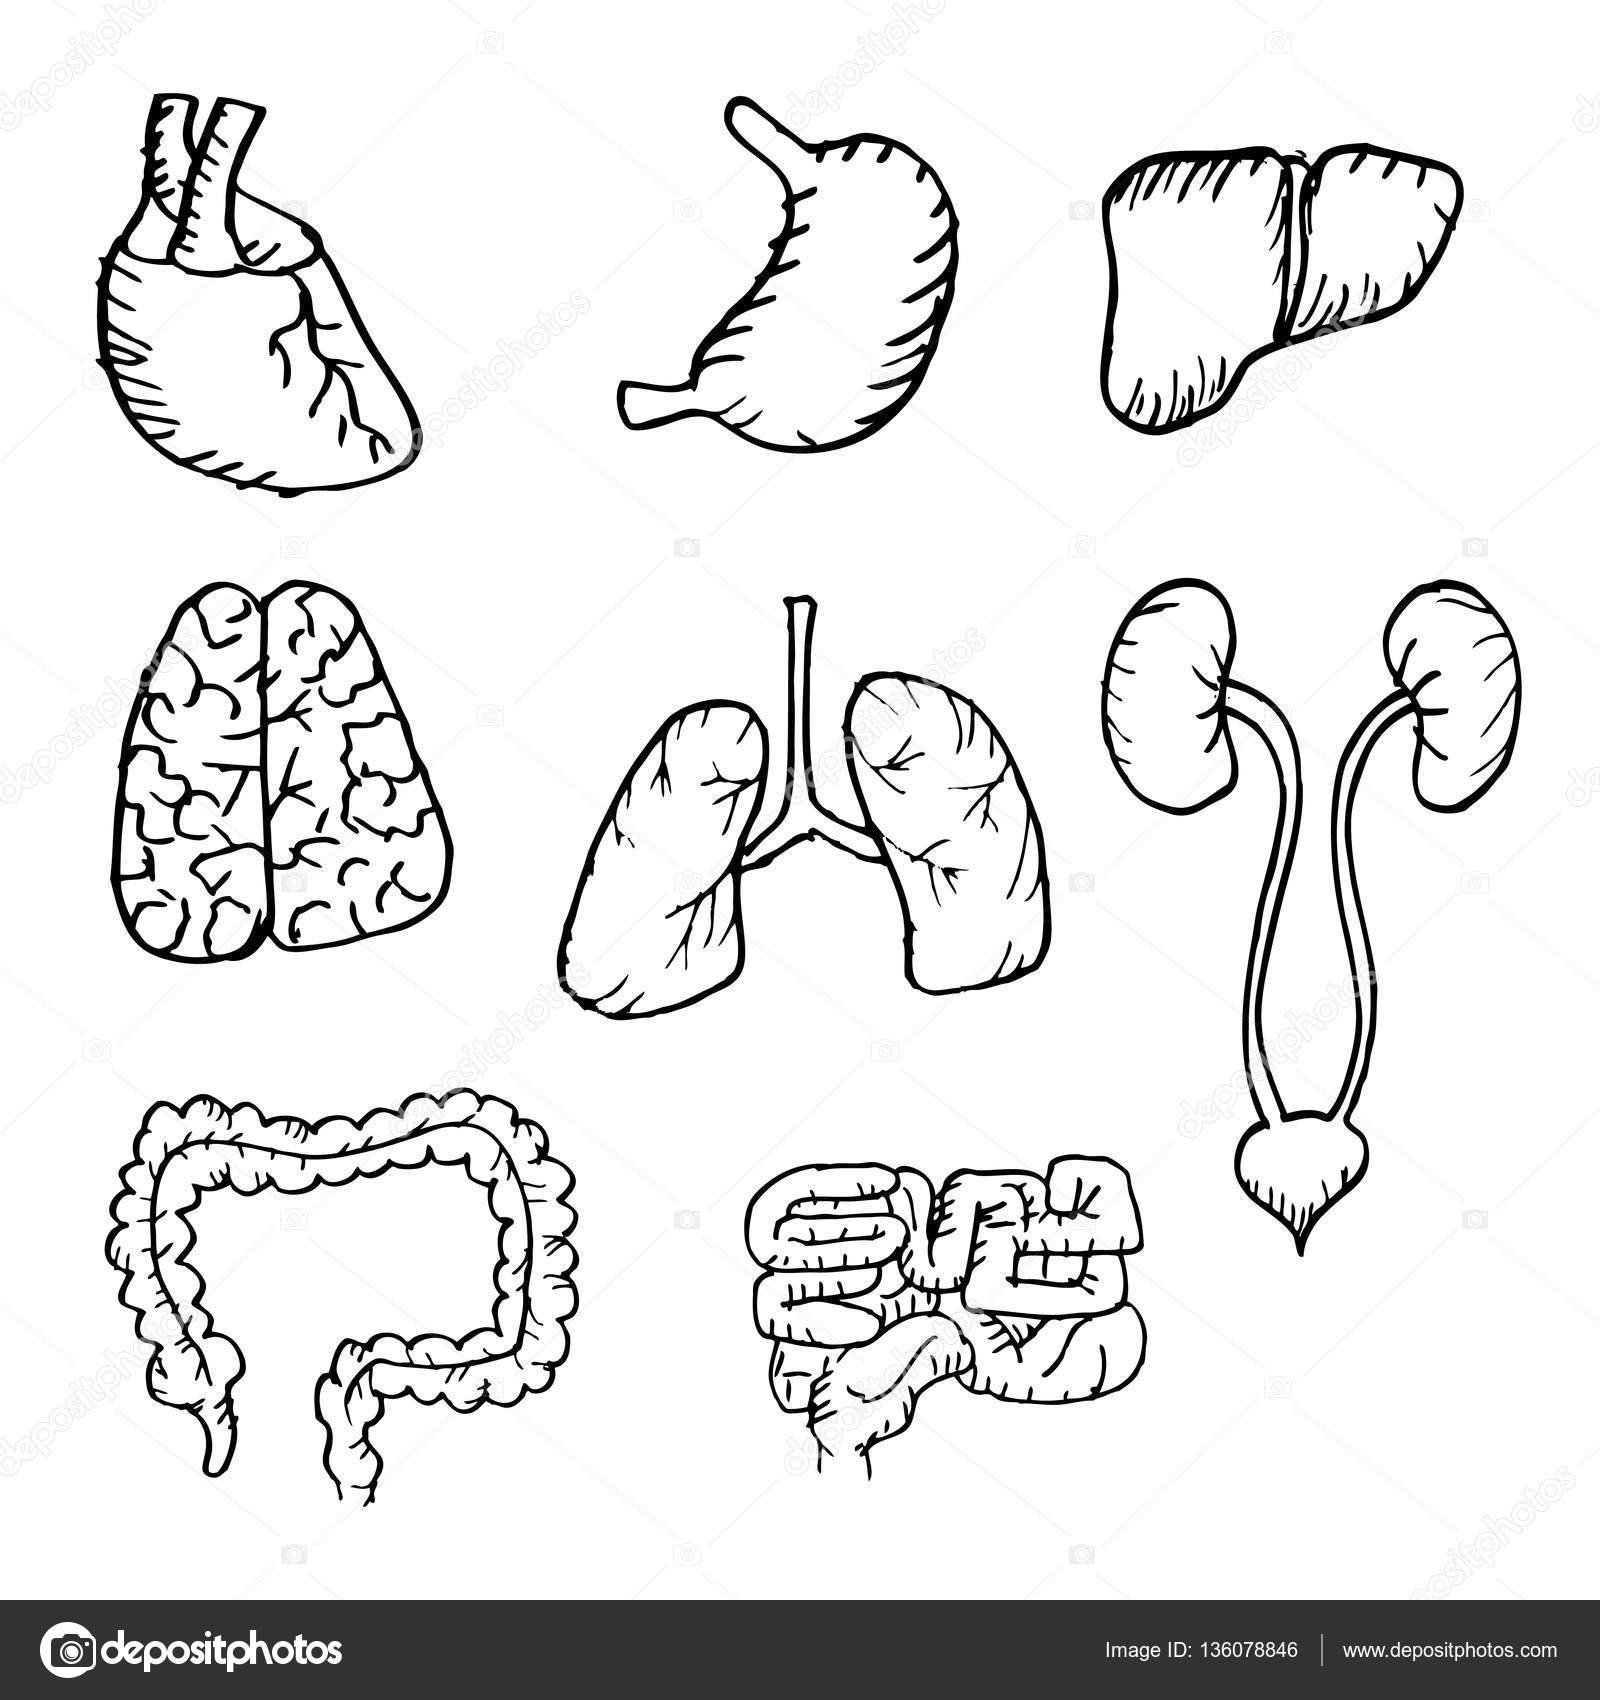 Human Organs Drawing At Getdrawings